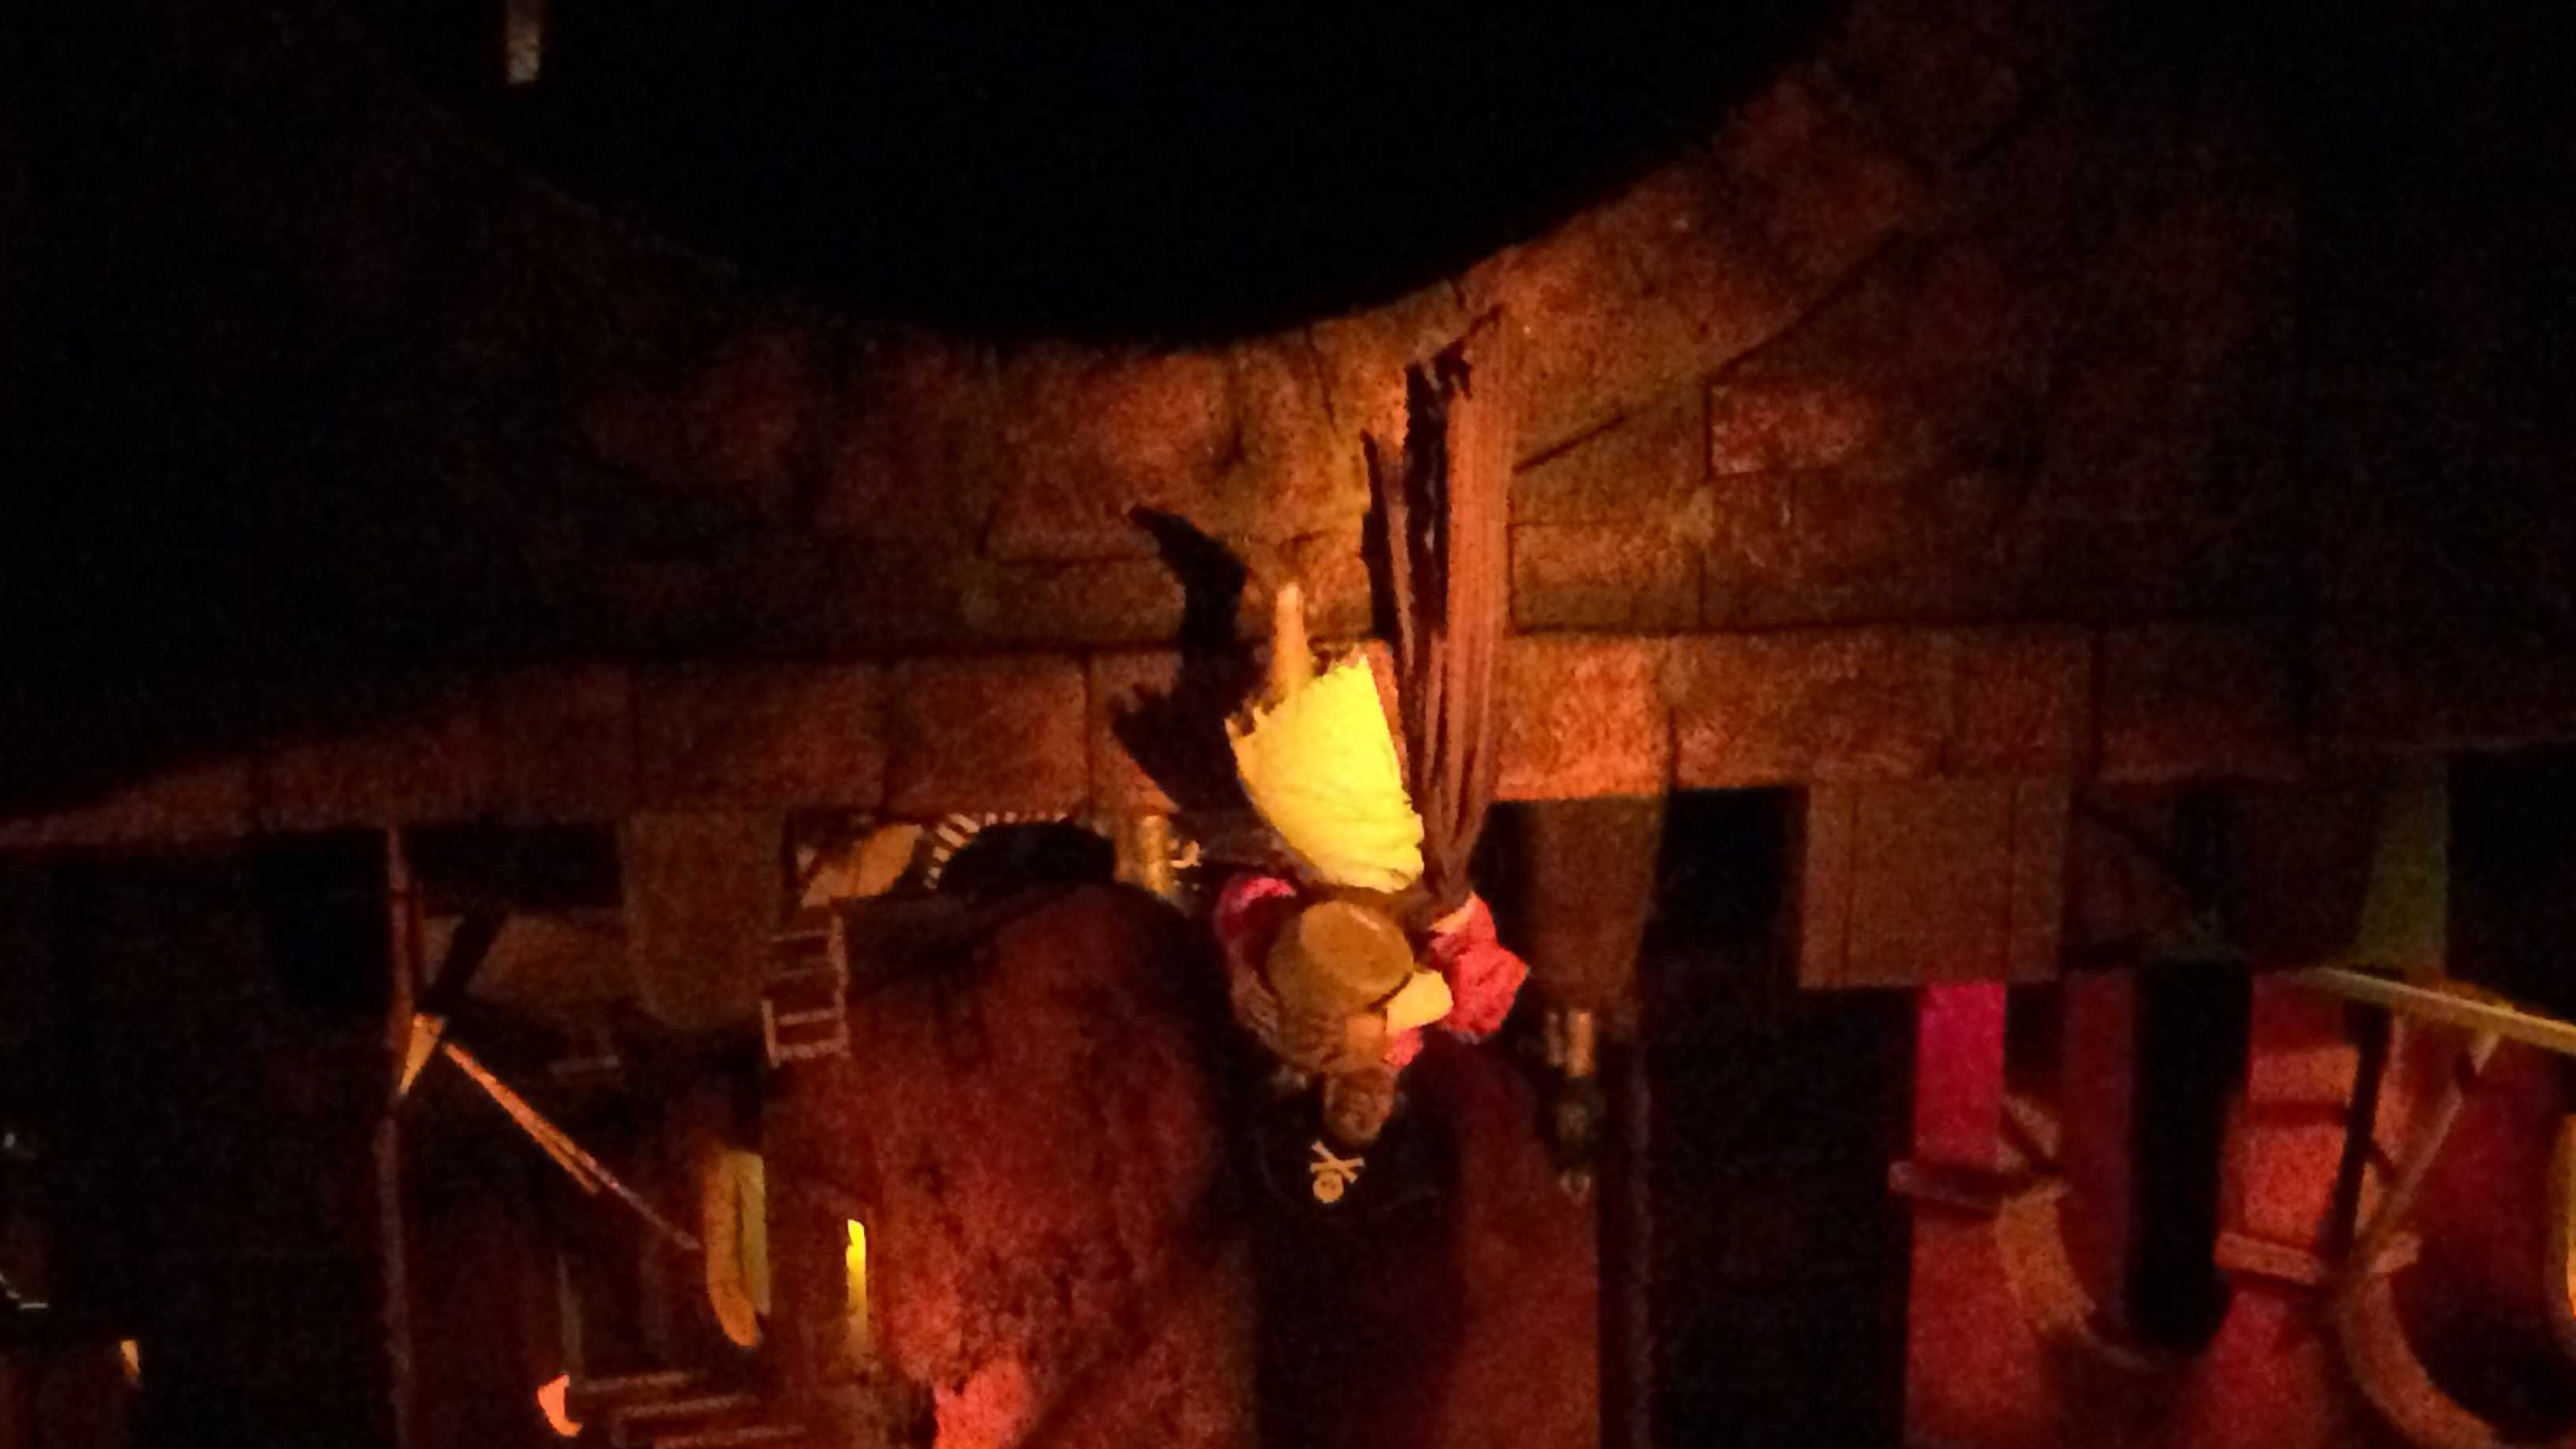 Pirates of the Carribean Disney Orlando ride 0711.JPG